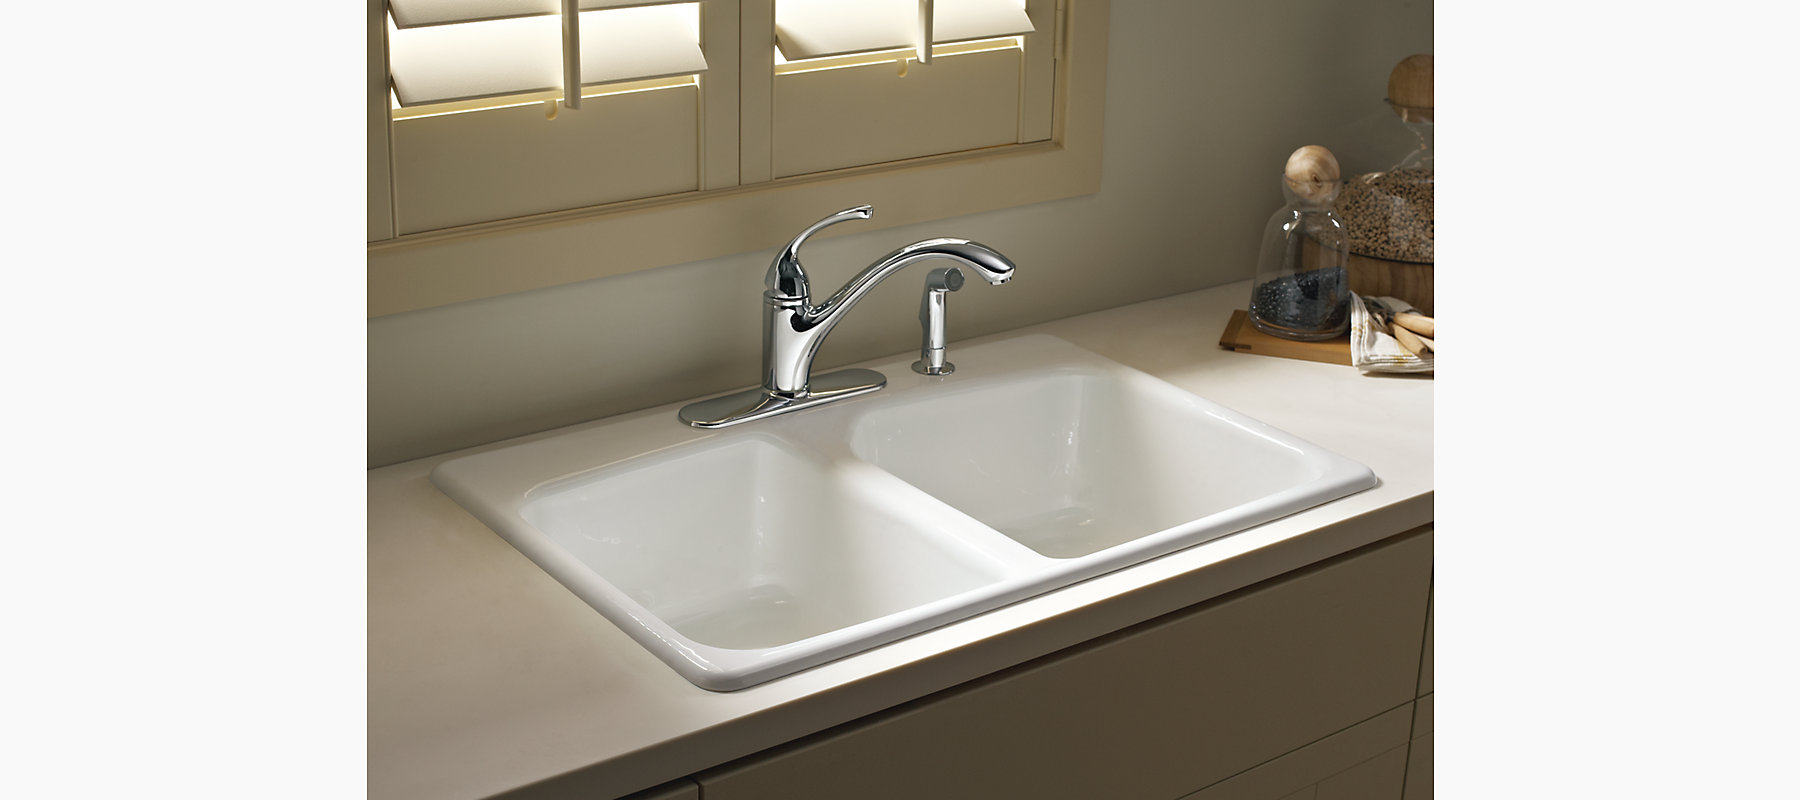 Brookfield Top-Mount Kitchen Sink with Four Faucet Holes | K-5942 ...